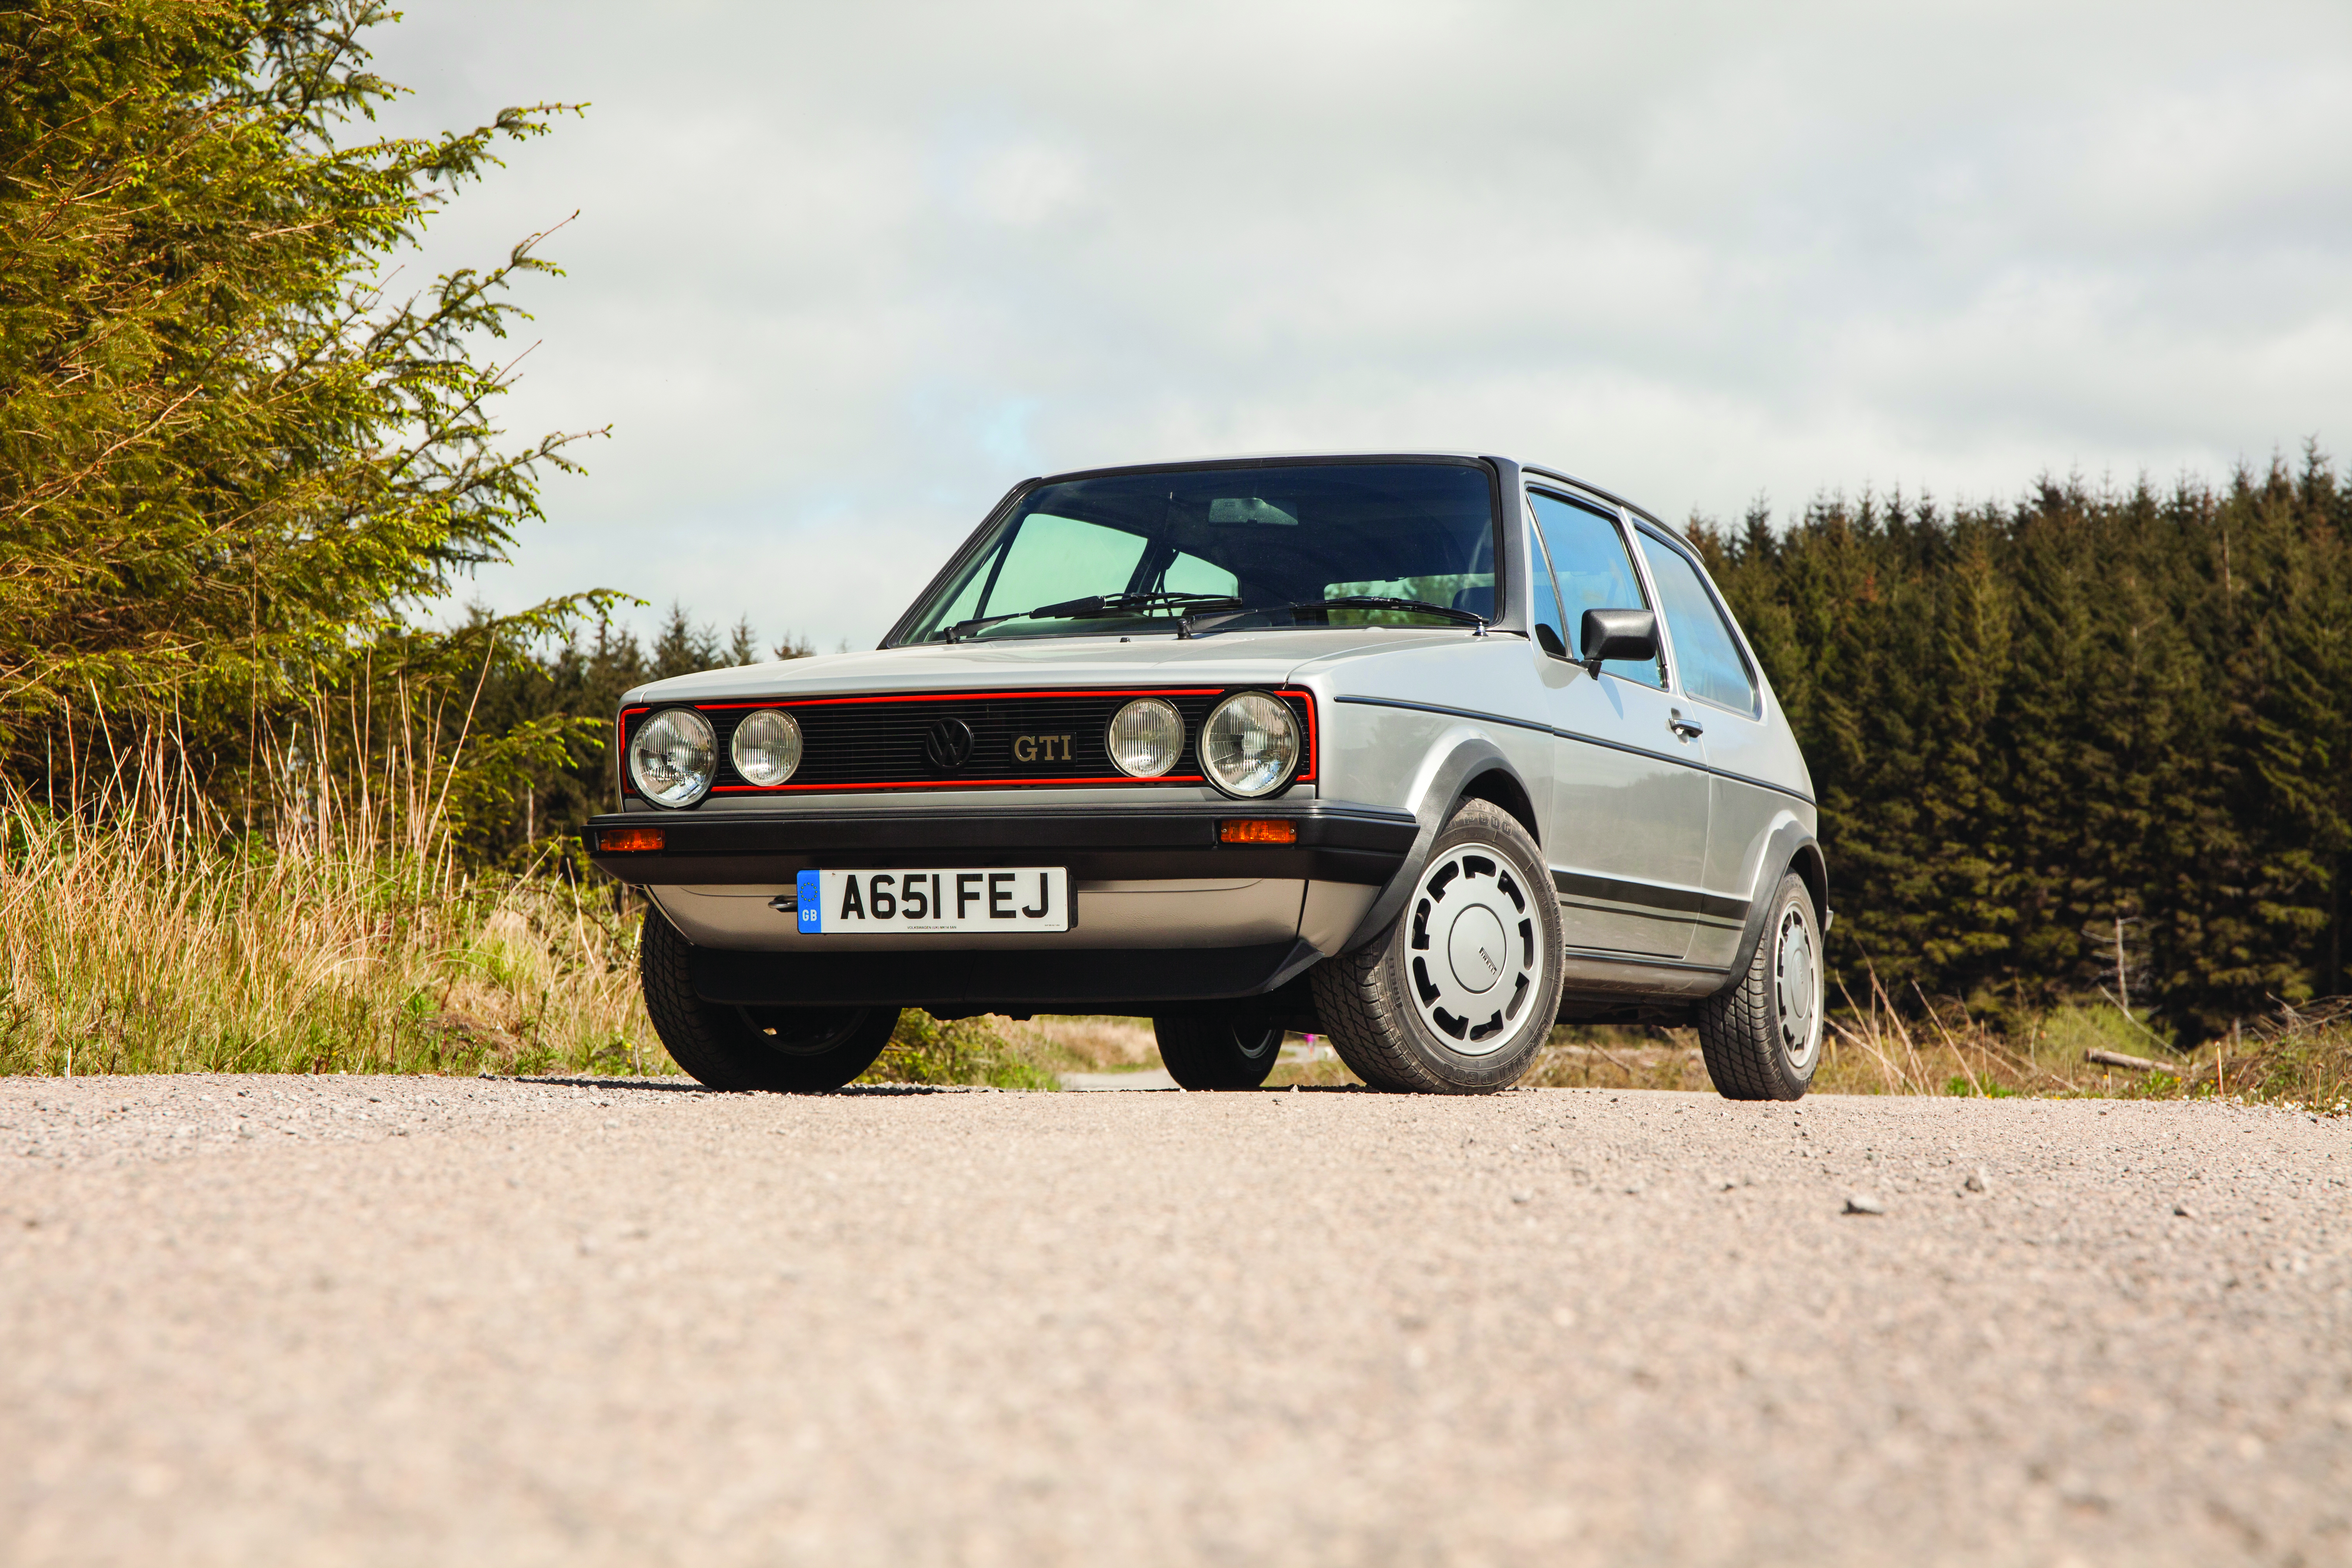 The MK1 GTI is easy to recognise